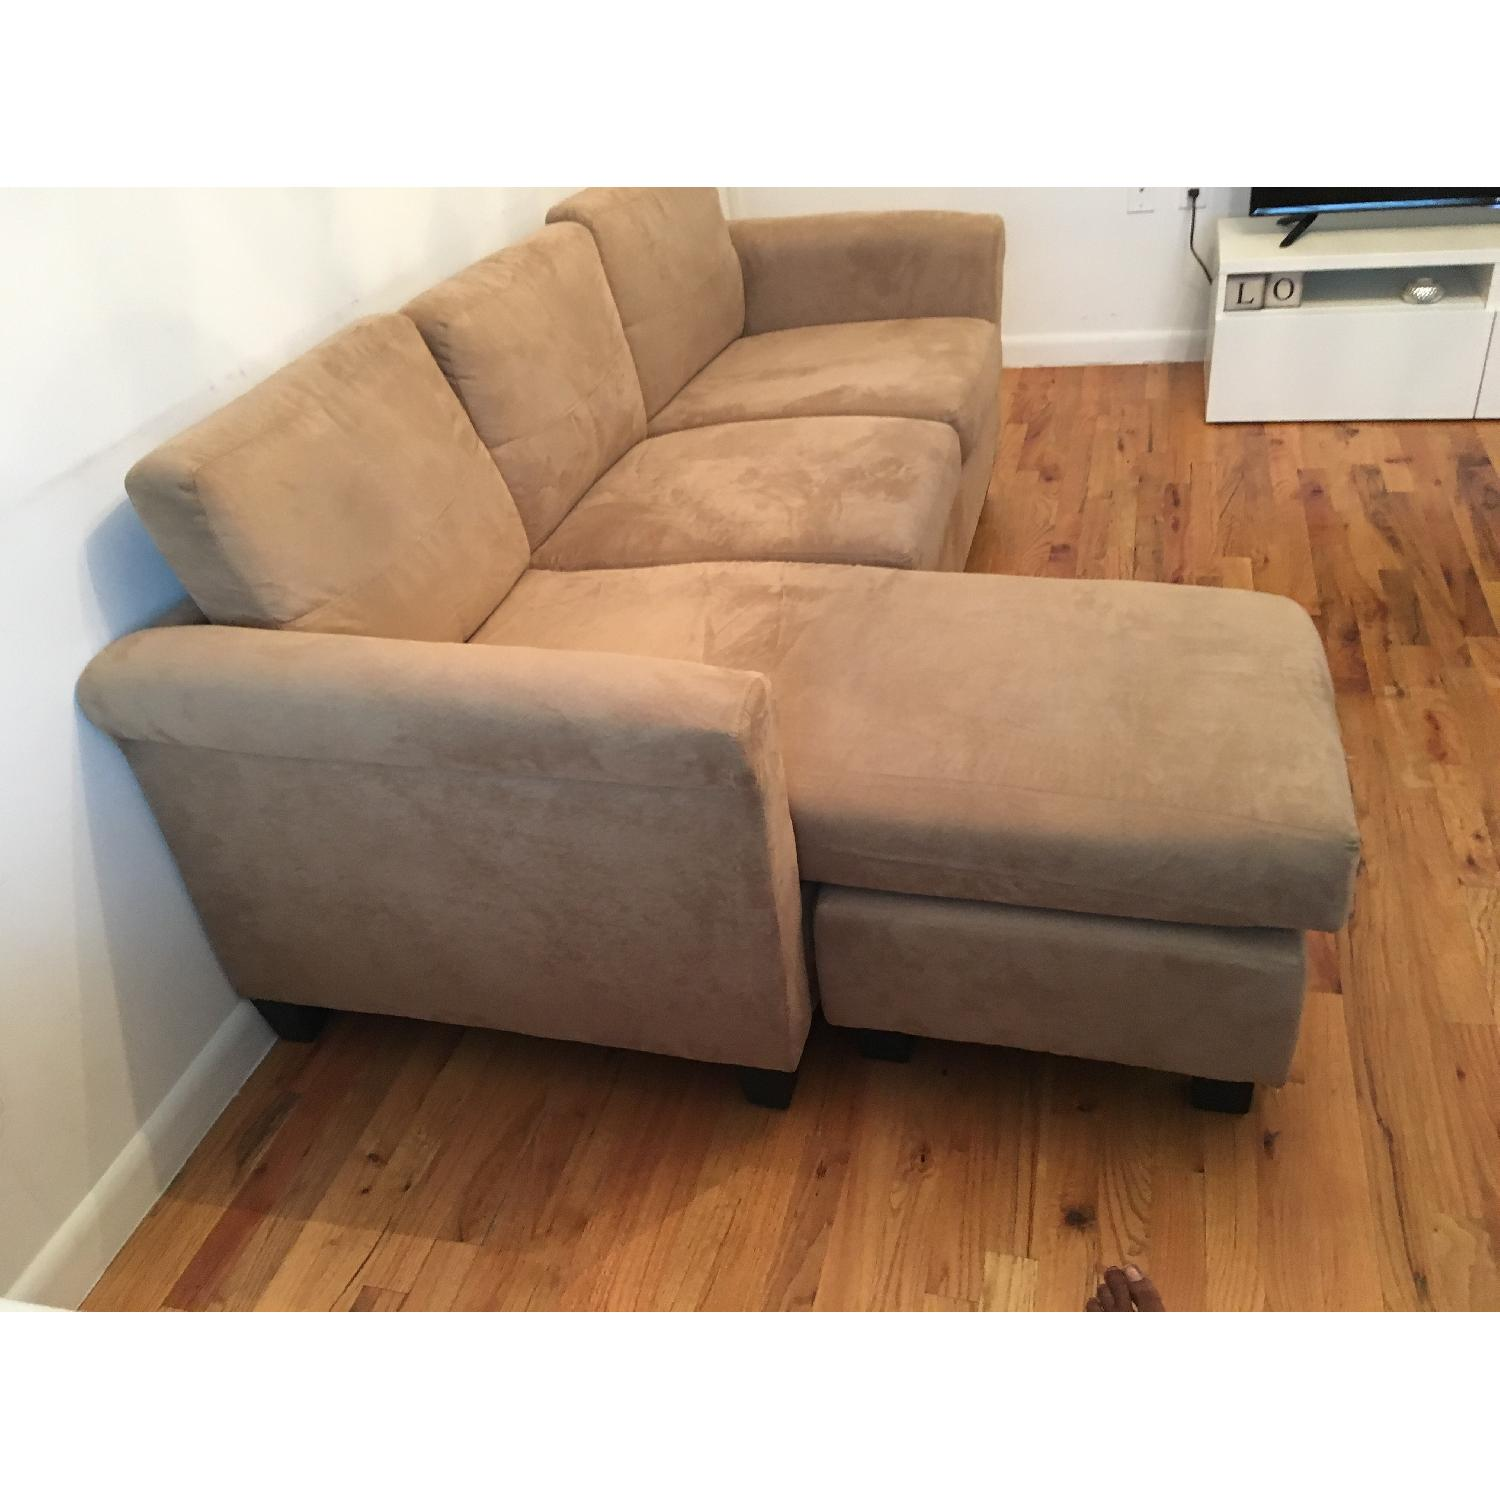 Beige Sectional Sofa - image-2